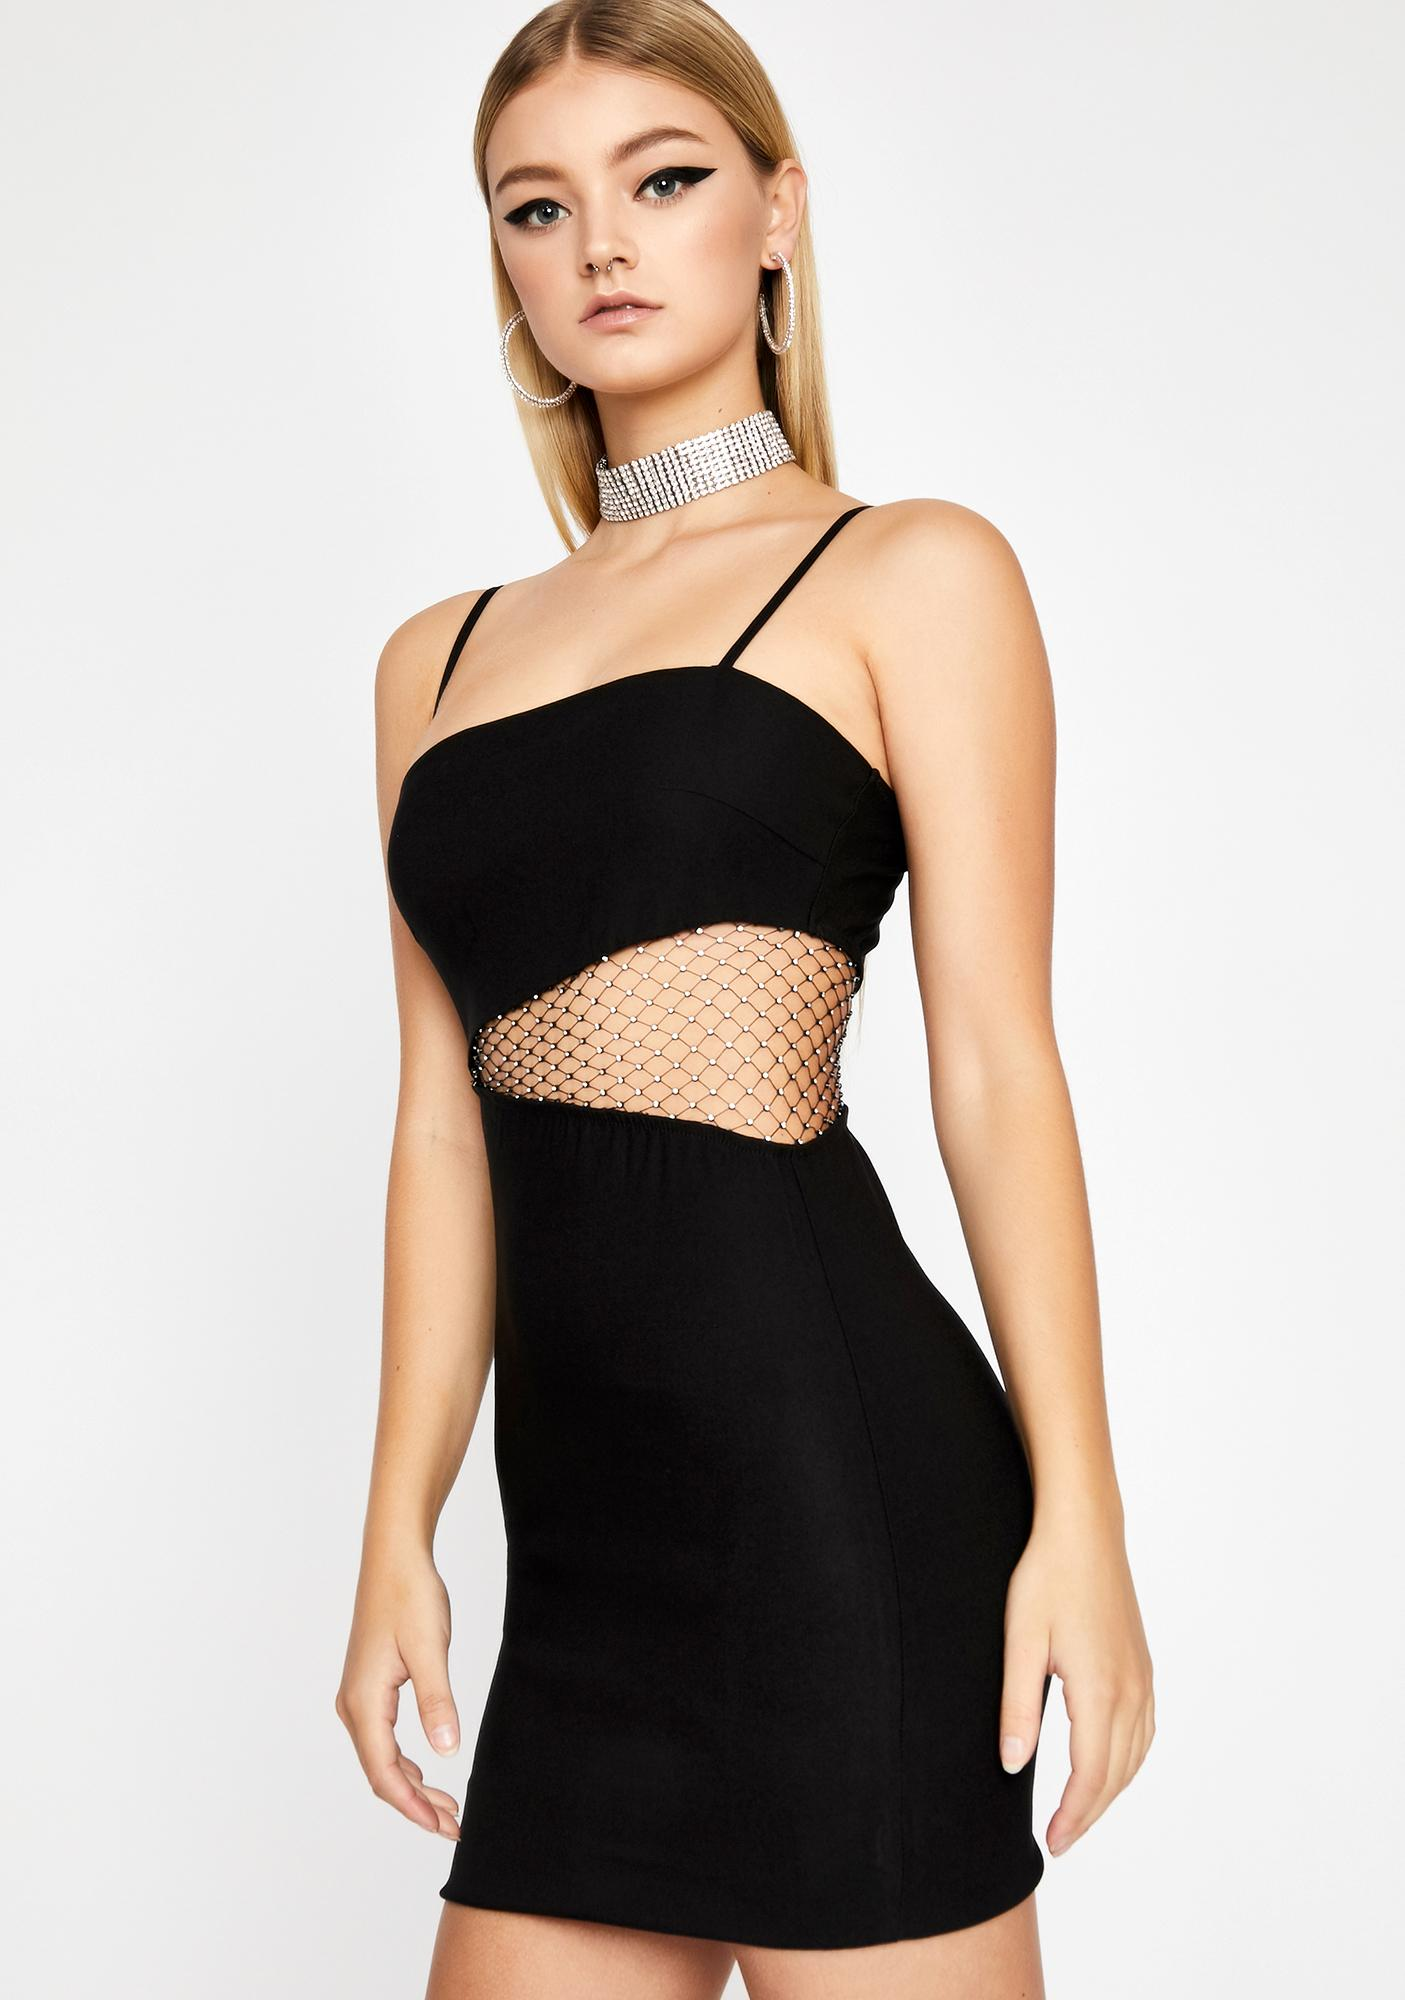 Diva Drip Cut-Out Dress